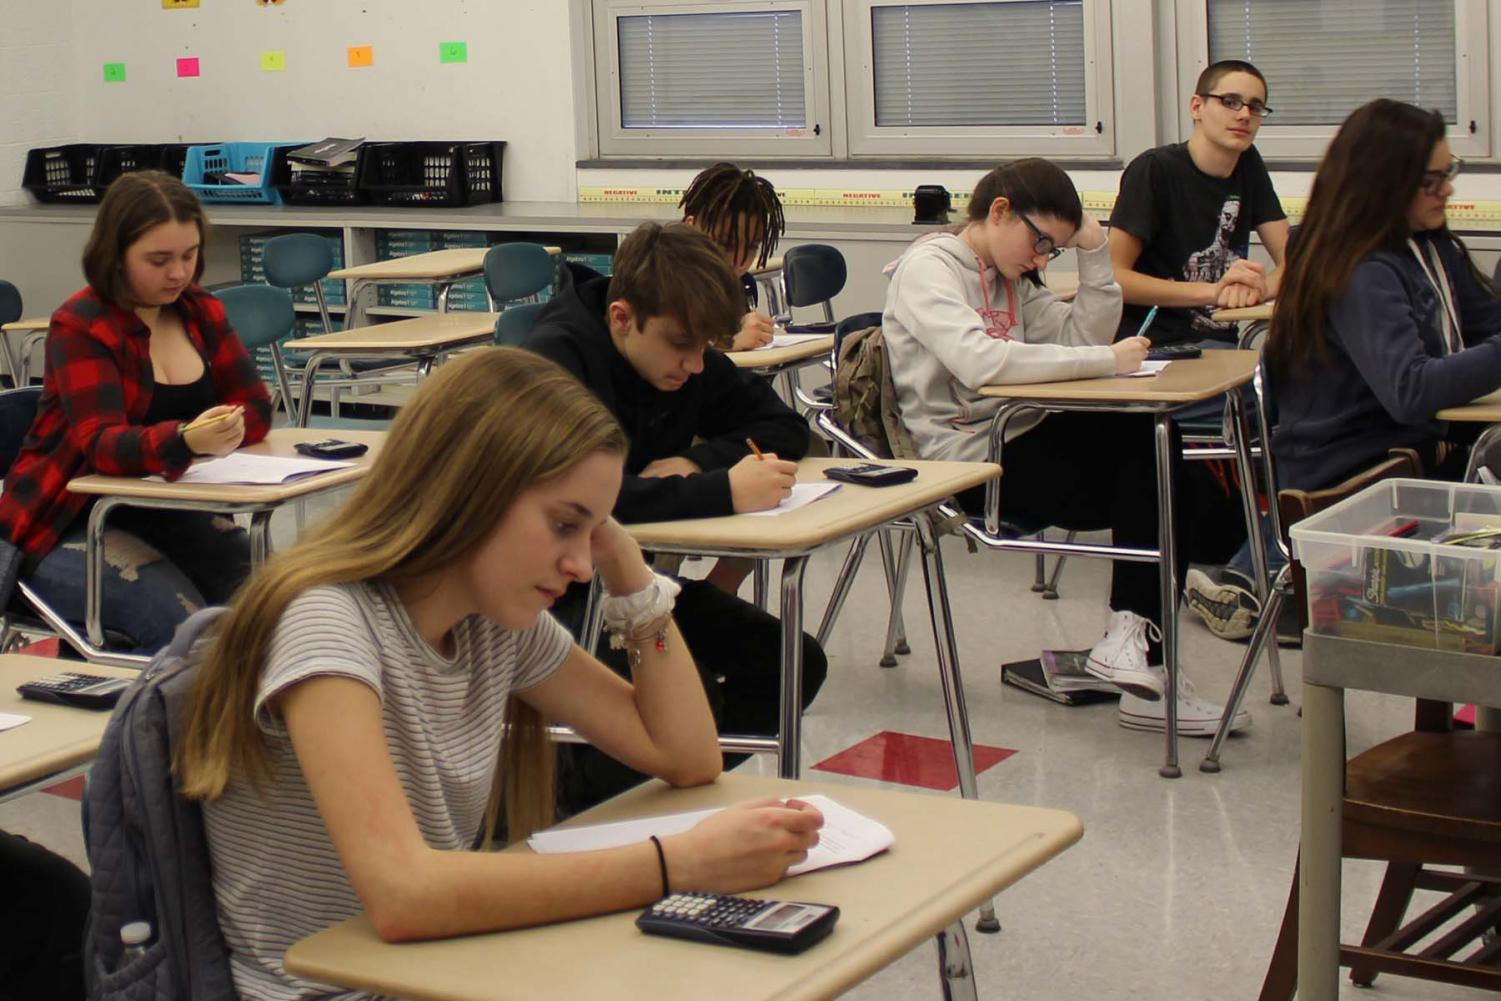 Ms. Koutsourais' eighth grade students take a math test during class on Jan. 24.